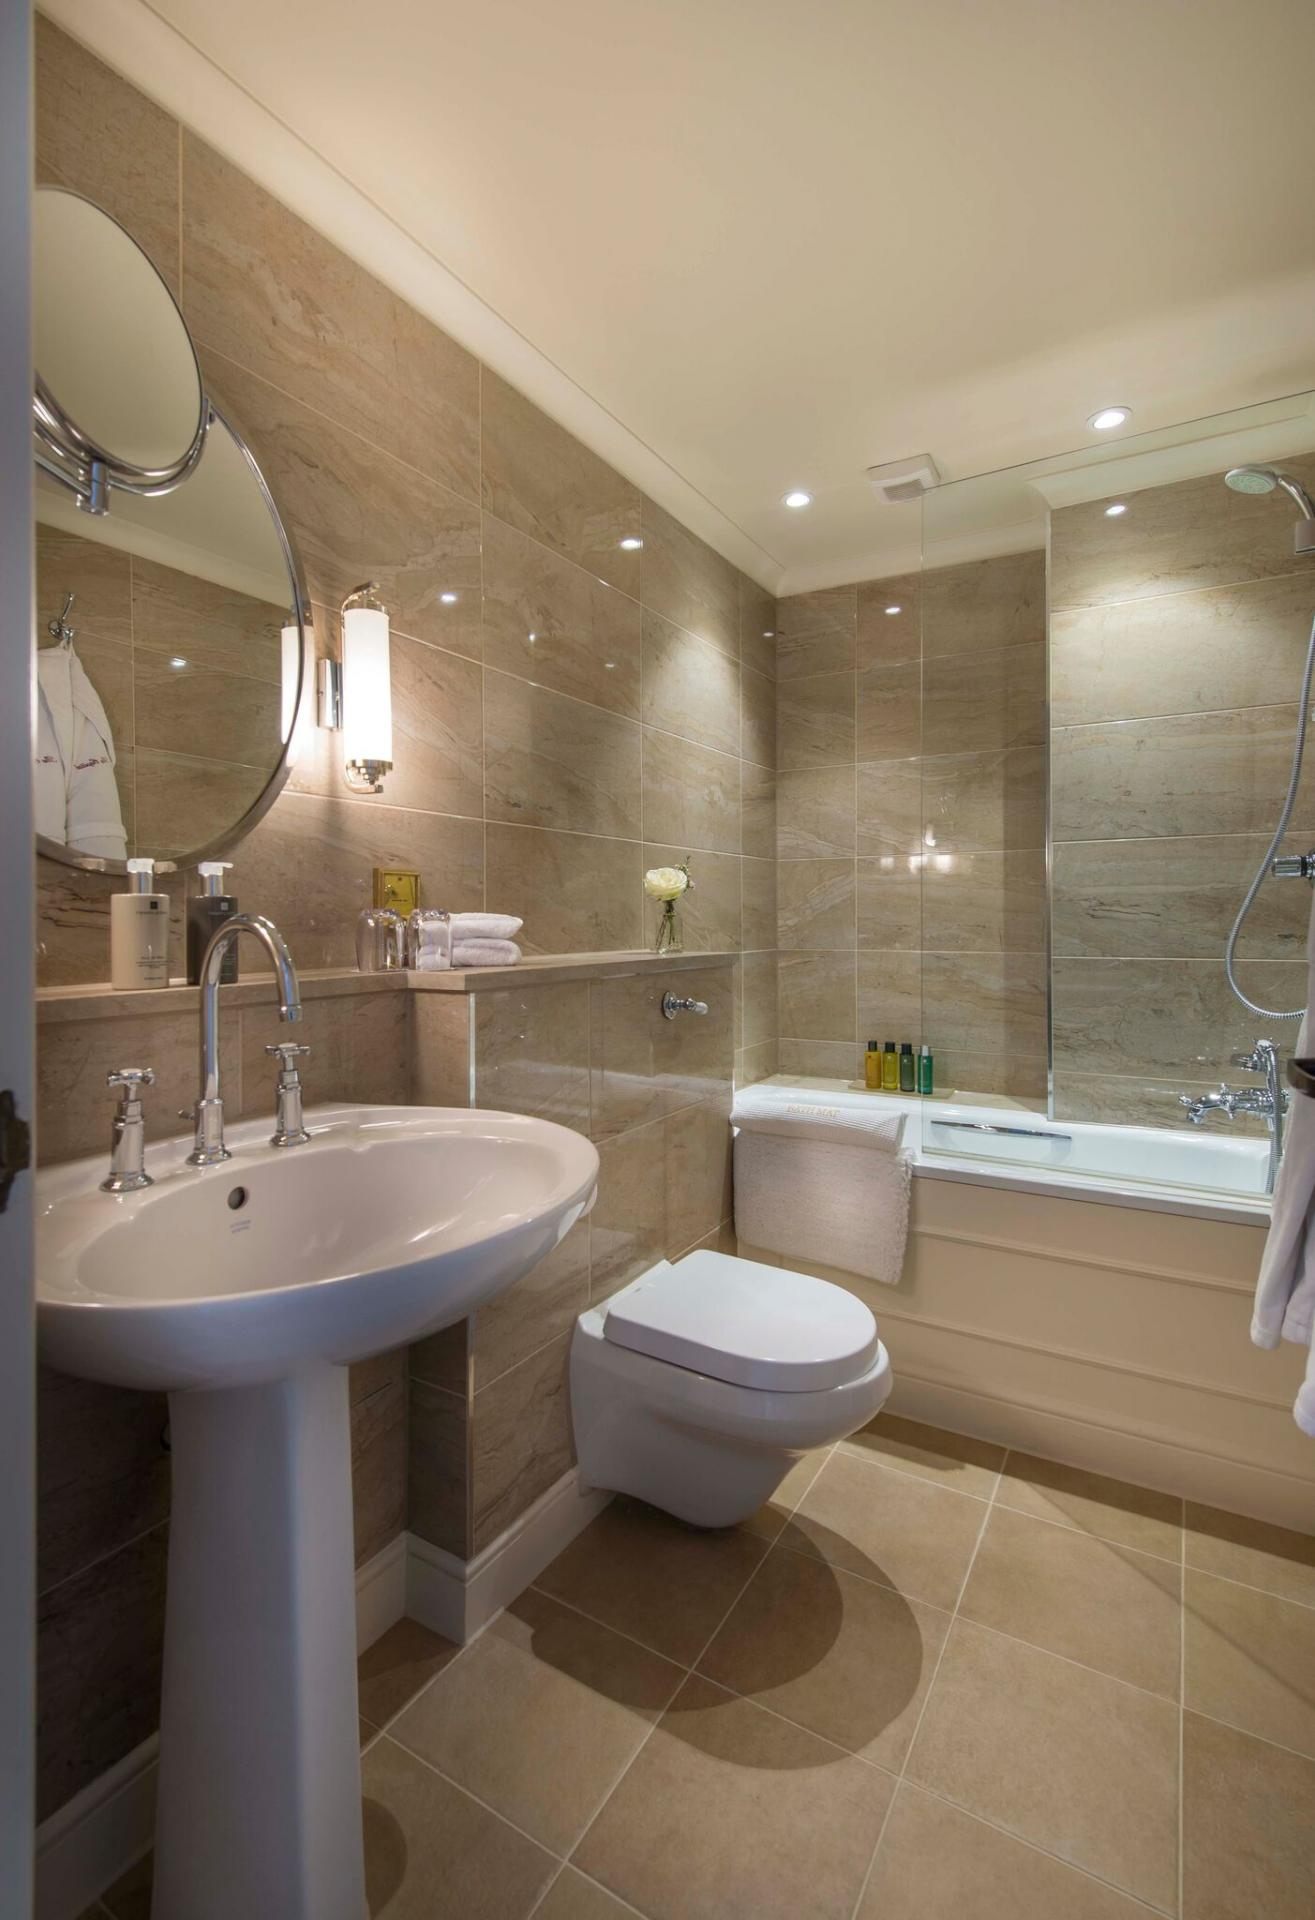 Modern bathroom at The Capital Hotel Knightsbridge